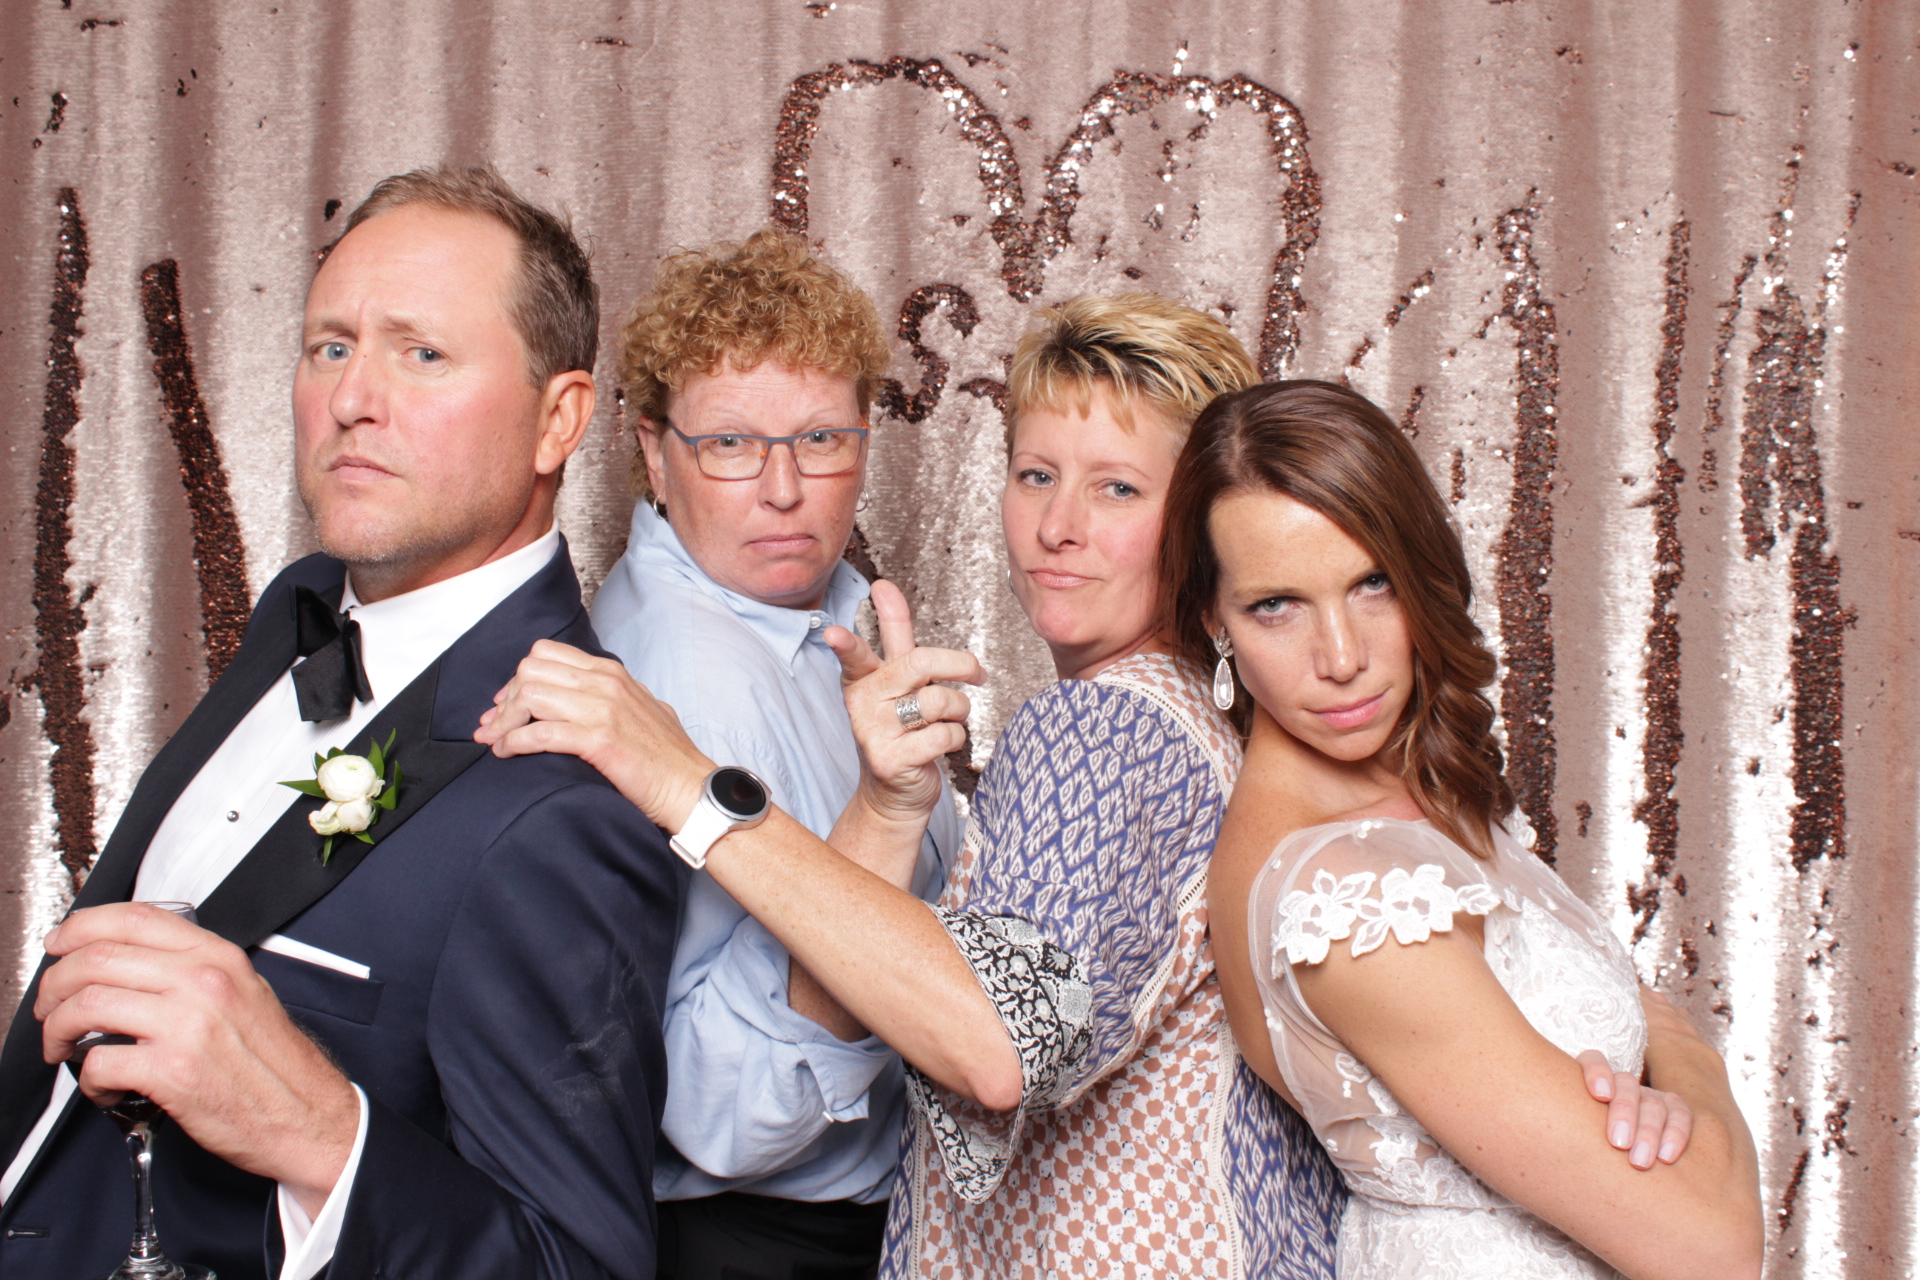 Minneapolis_Aria_Wedding_Photo_Booth (12).jpg